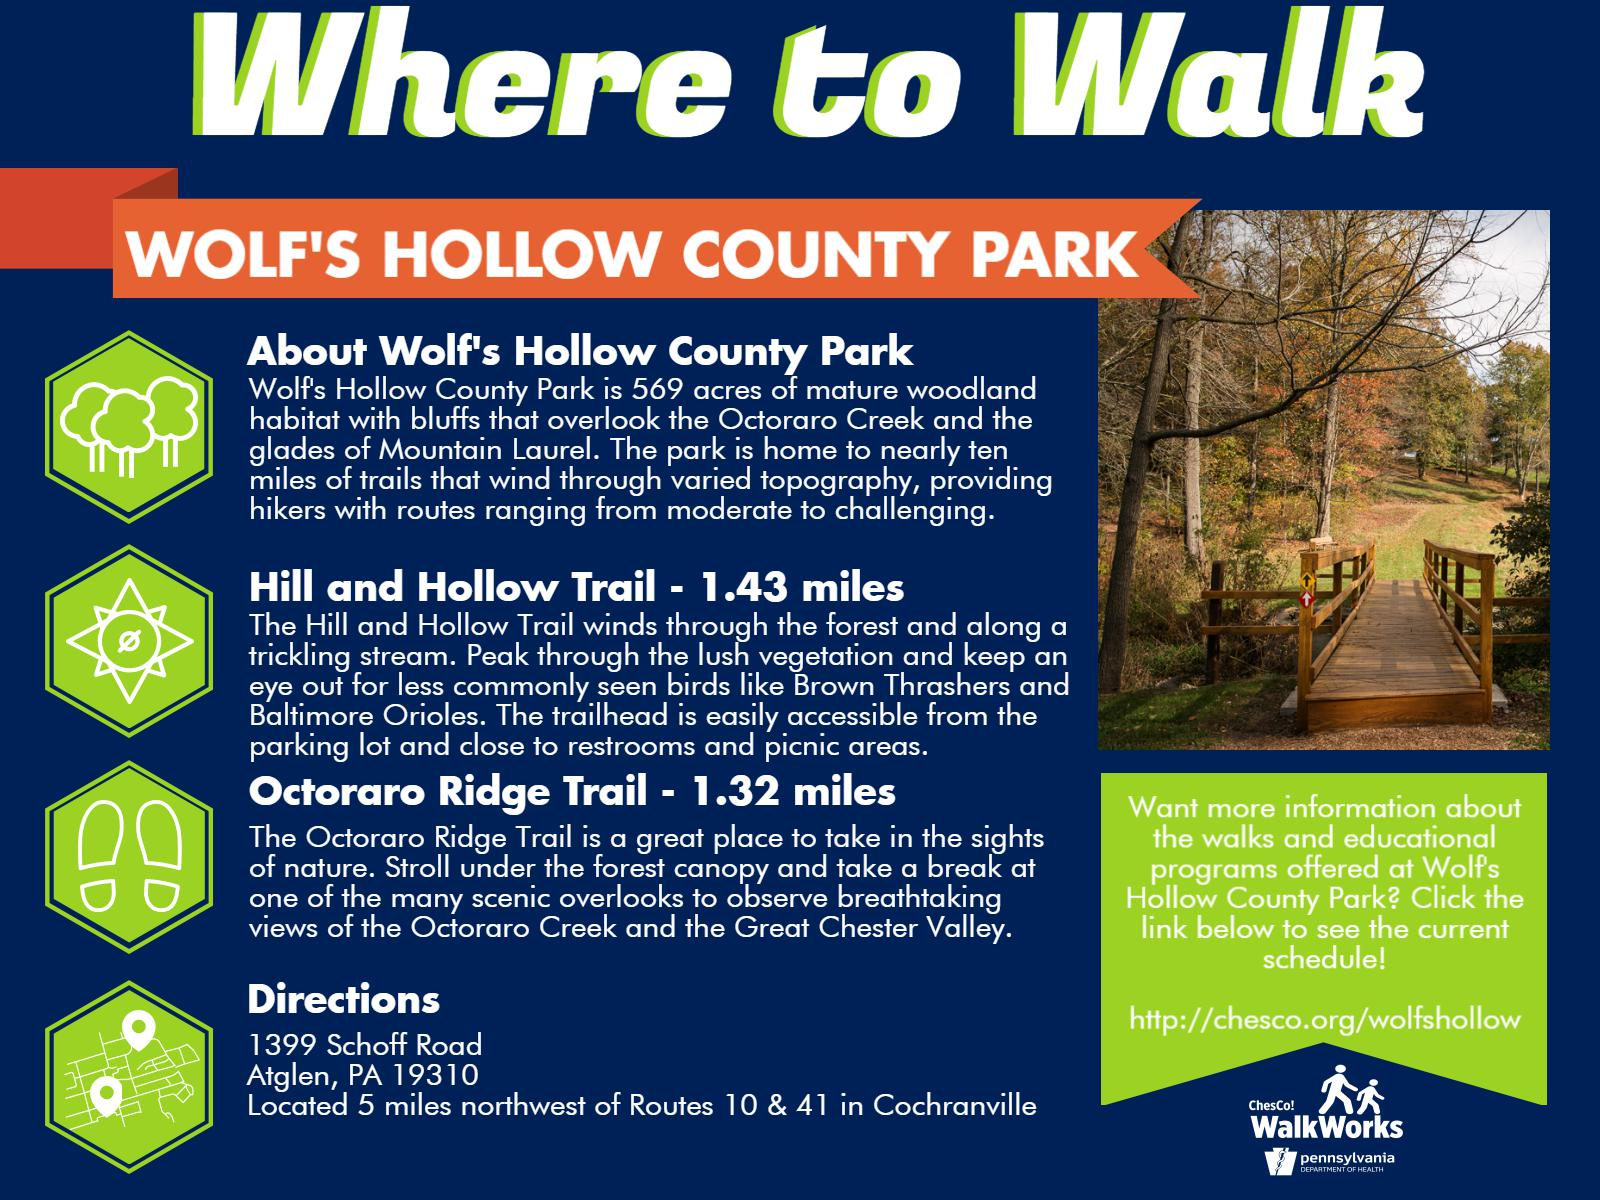 Wolfs Hollow County Park